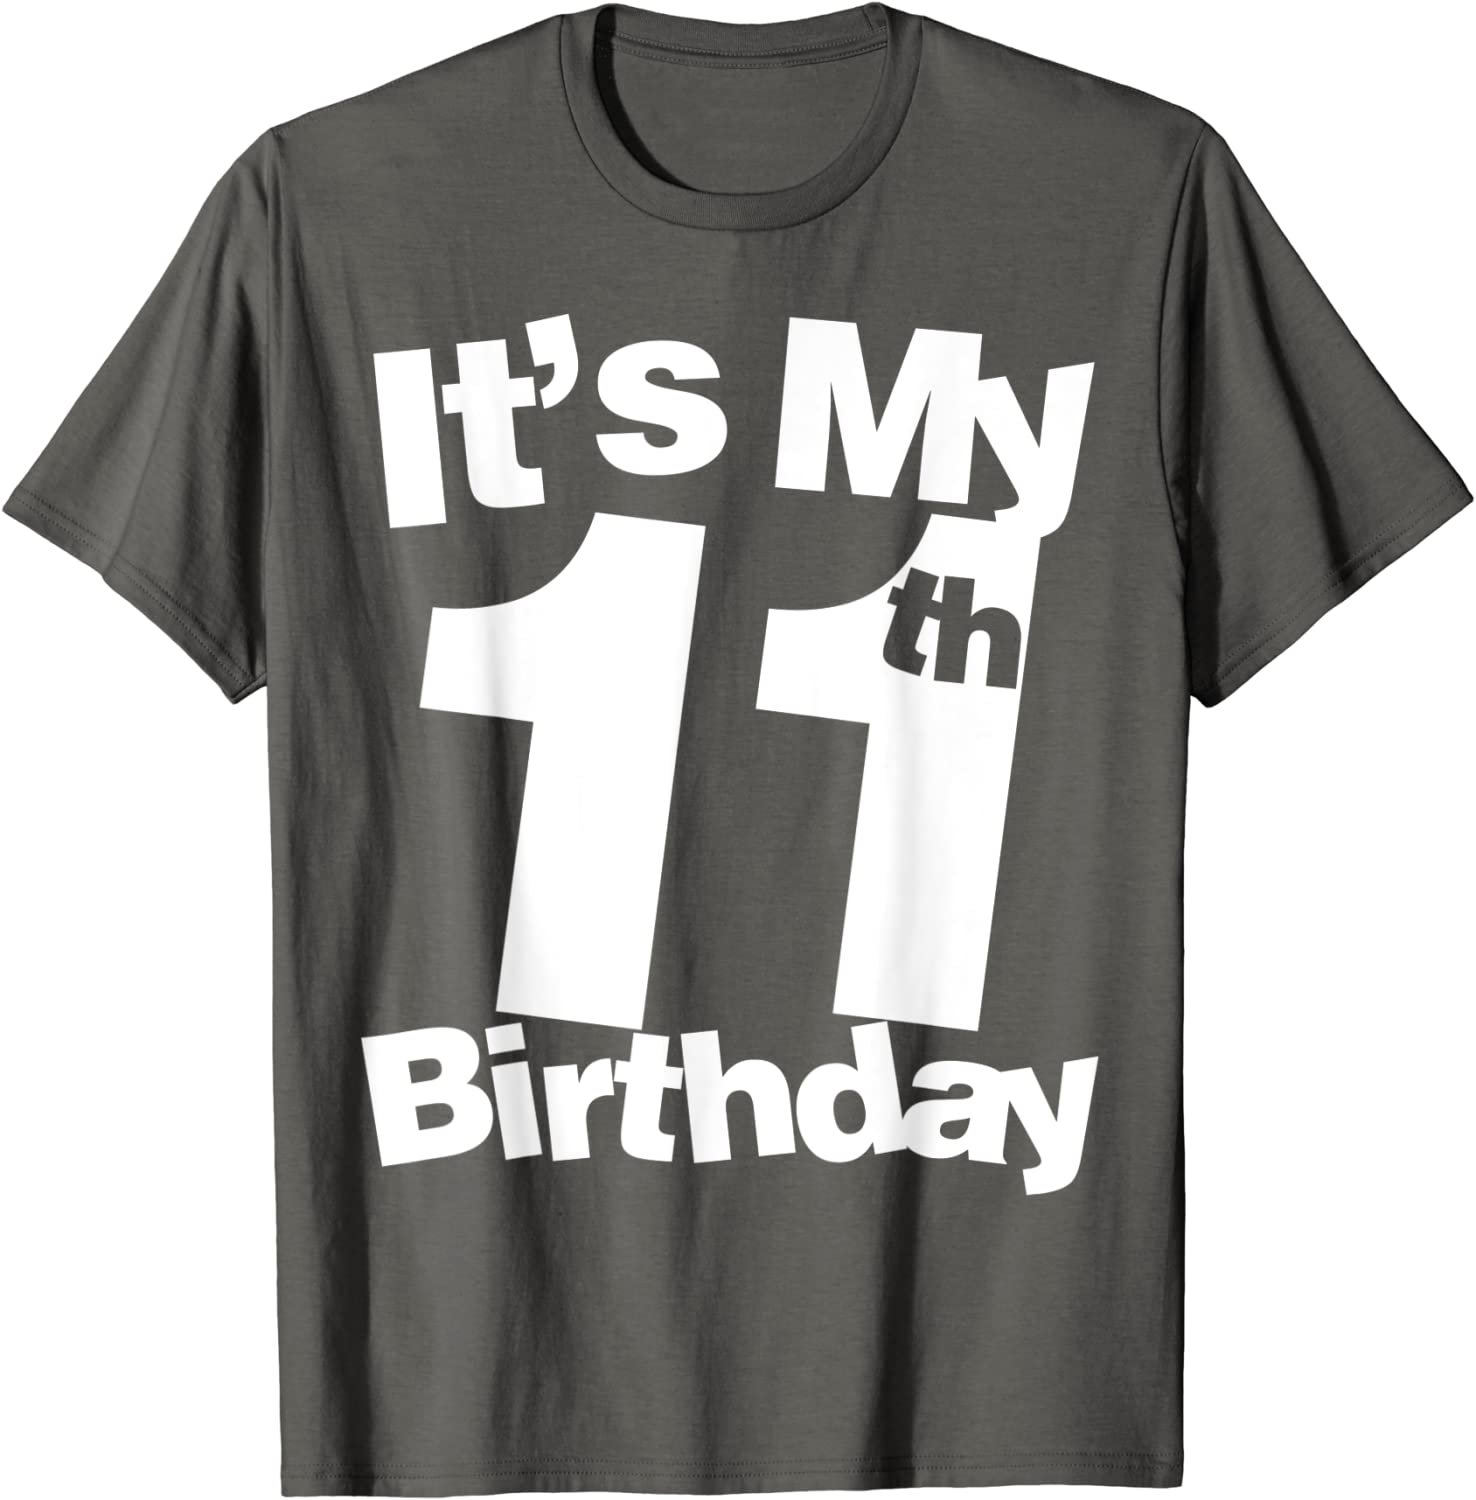 Funny 11th Birthday Kids Shirt Recently Upgraded To Version 11.0 Youth T-Shirt